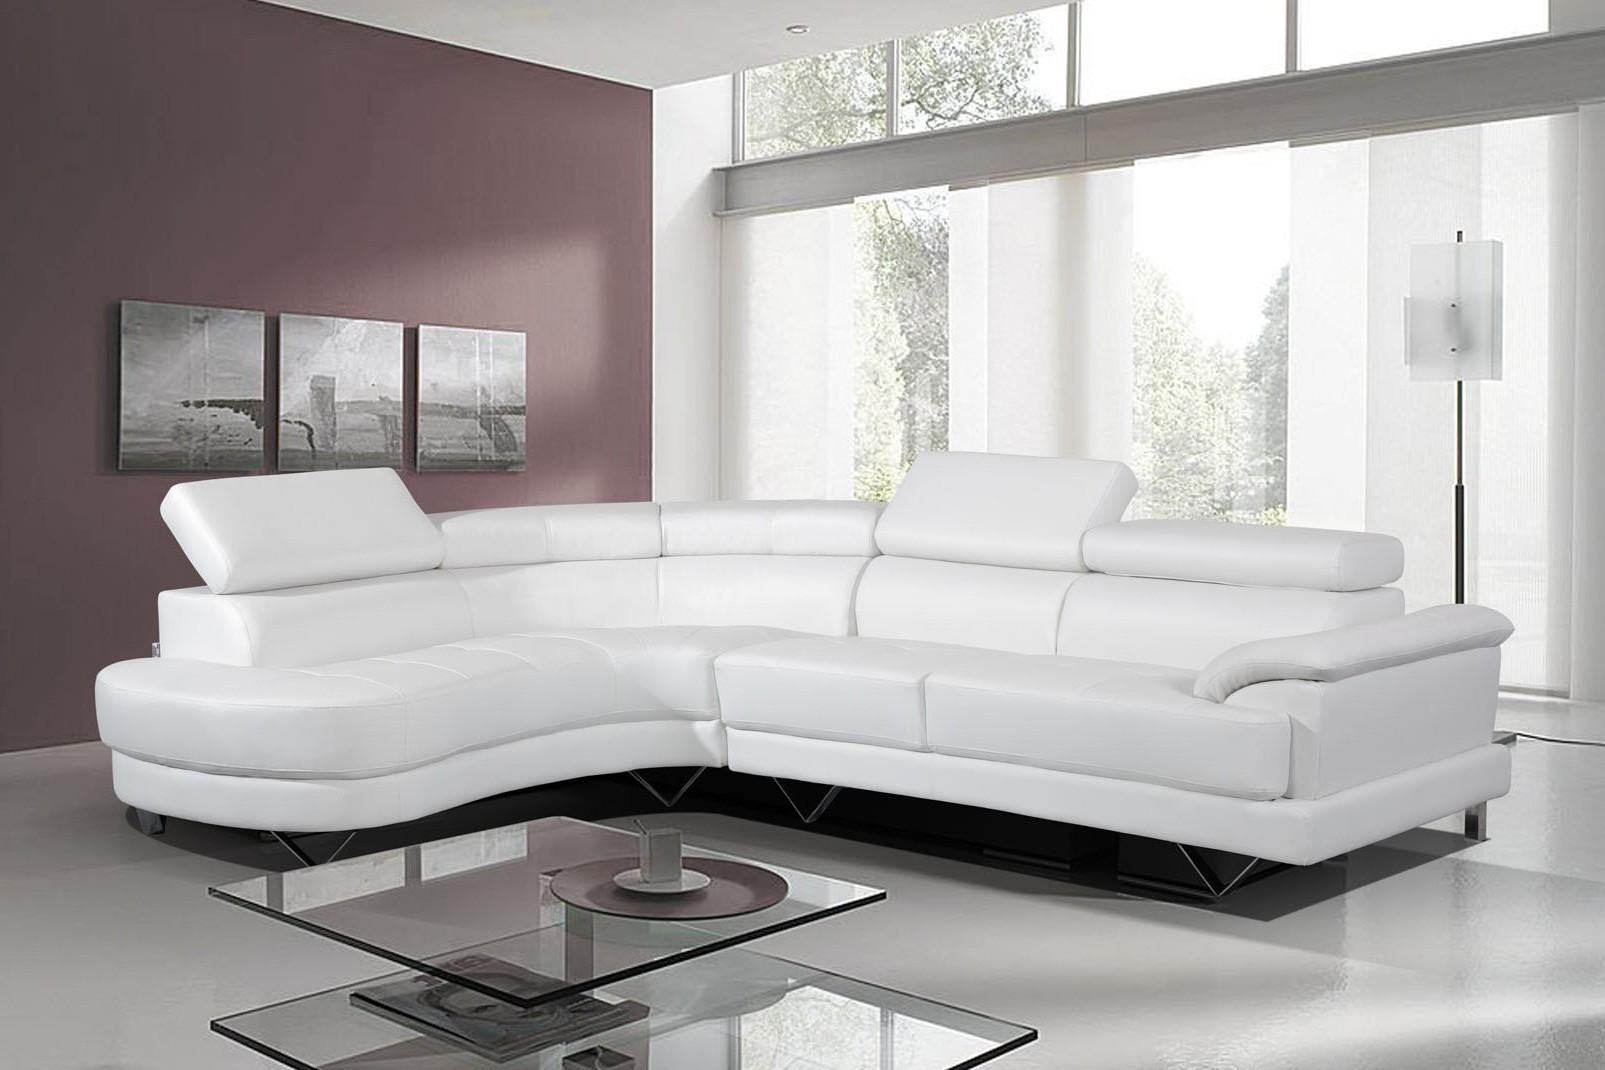 Leather Corner Sofas Elegant Home Design Intended For Corner Sofa Leather (View 14 of 20)